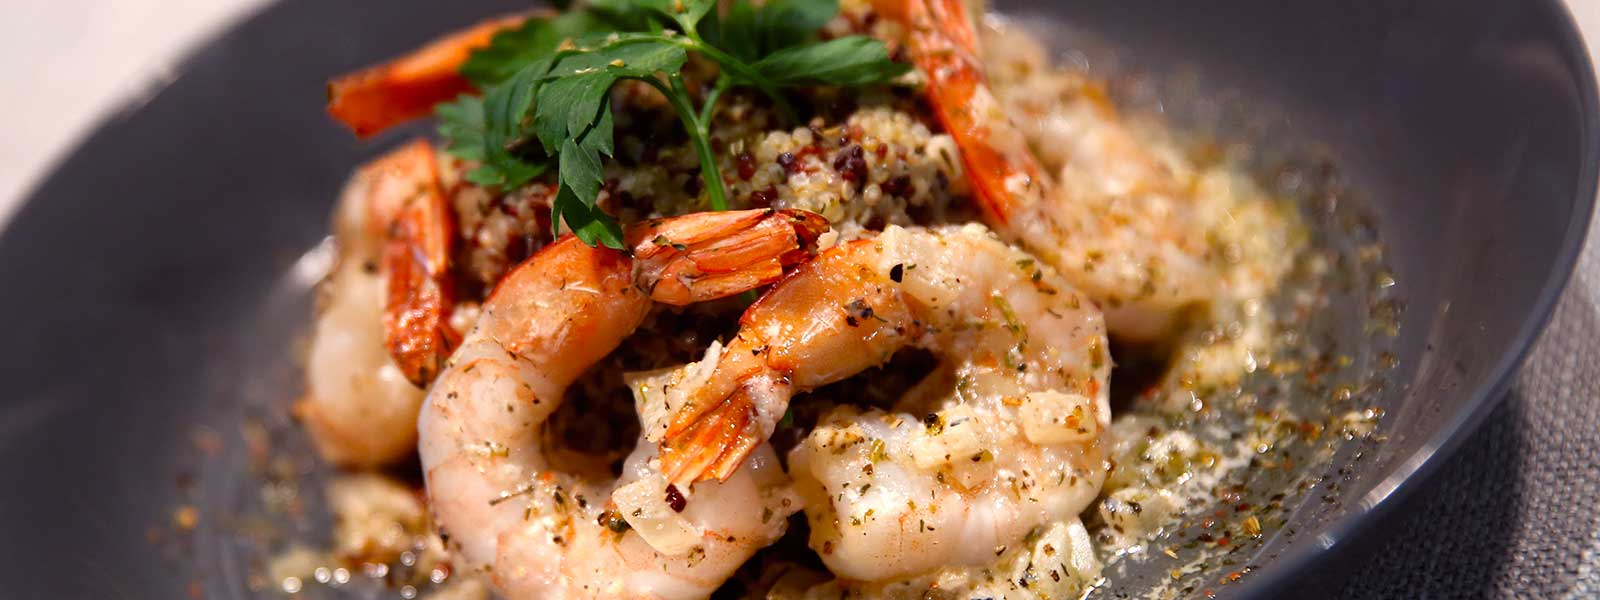 Shrimp grilled on the Big Green Egg served over a bed of Quinoa